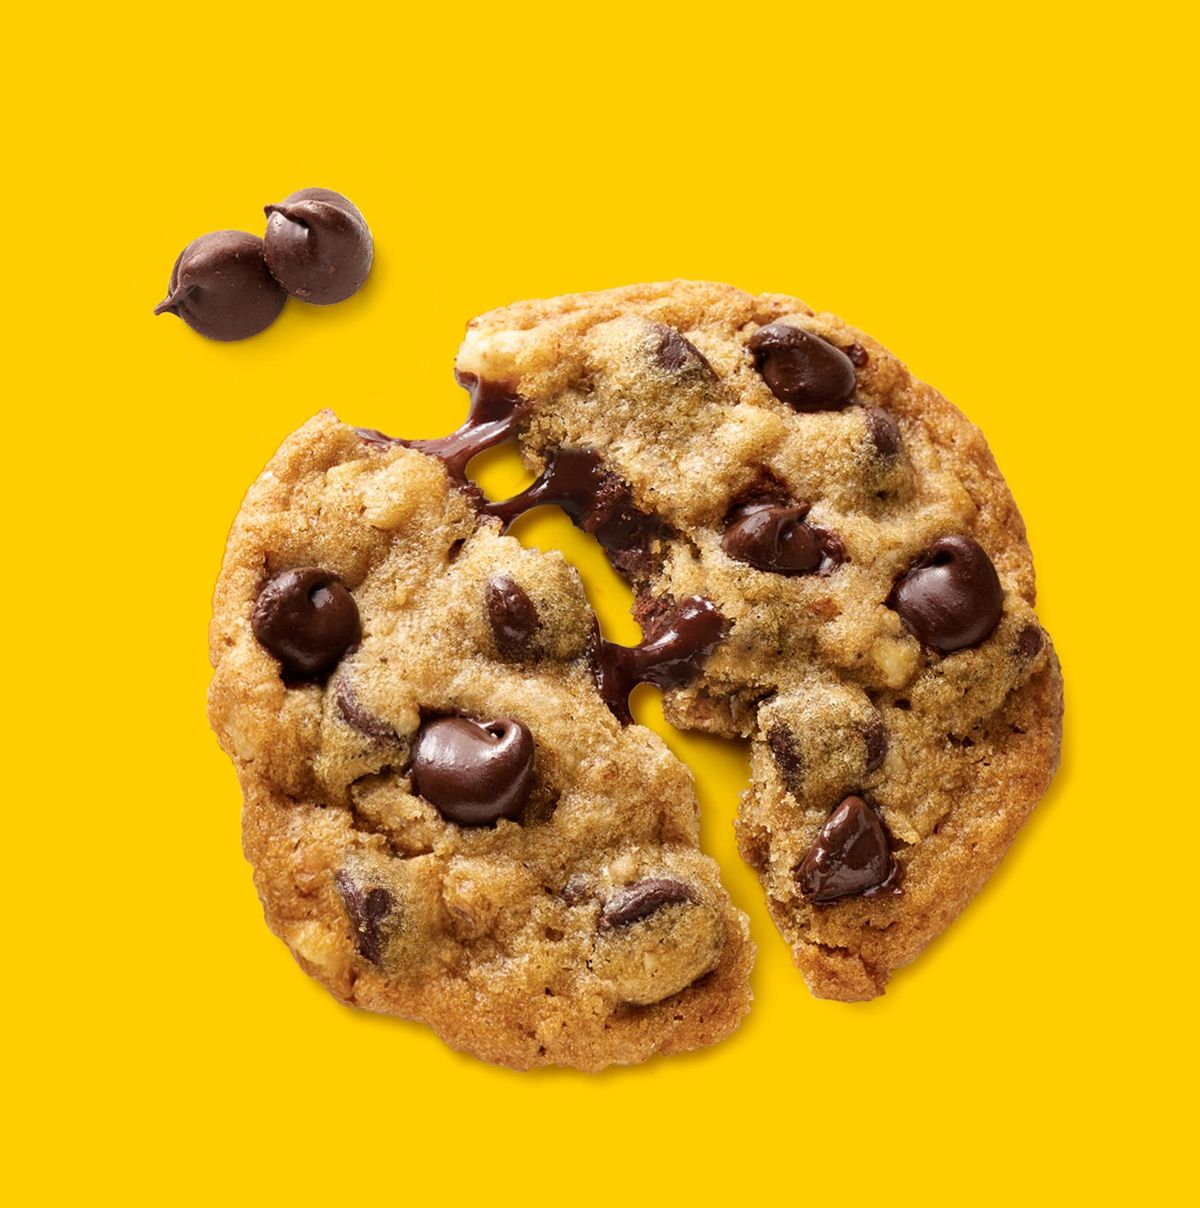 Nestle Toll House semi-sweet chocolate chip cookie